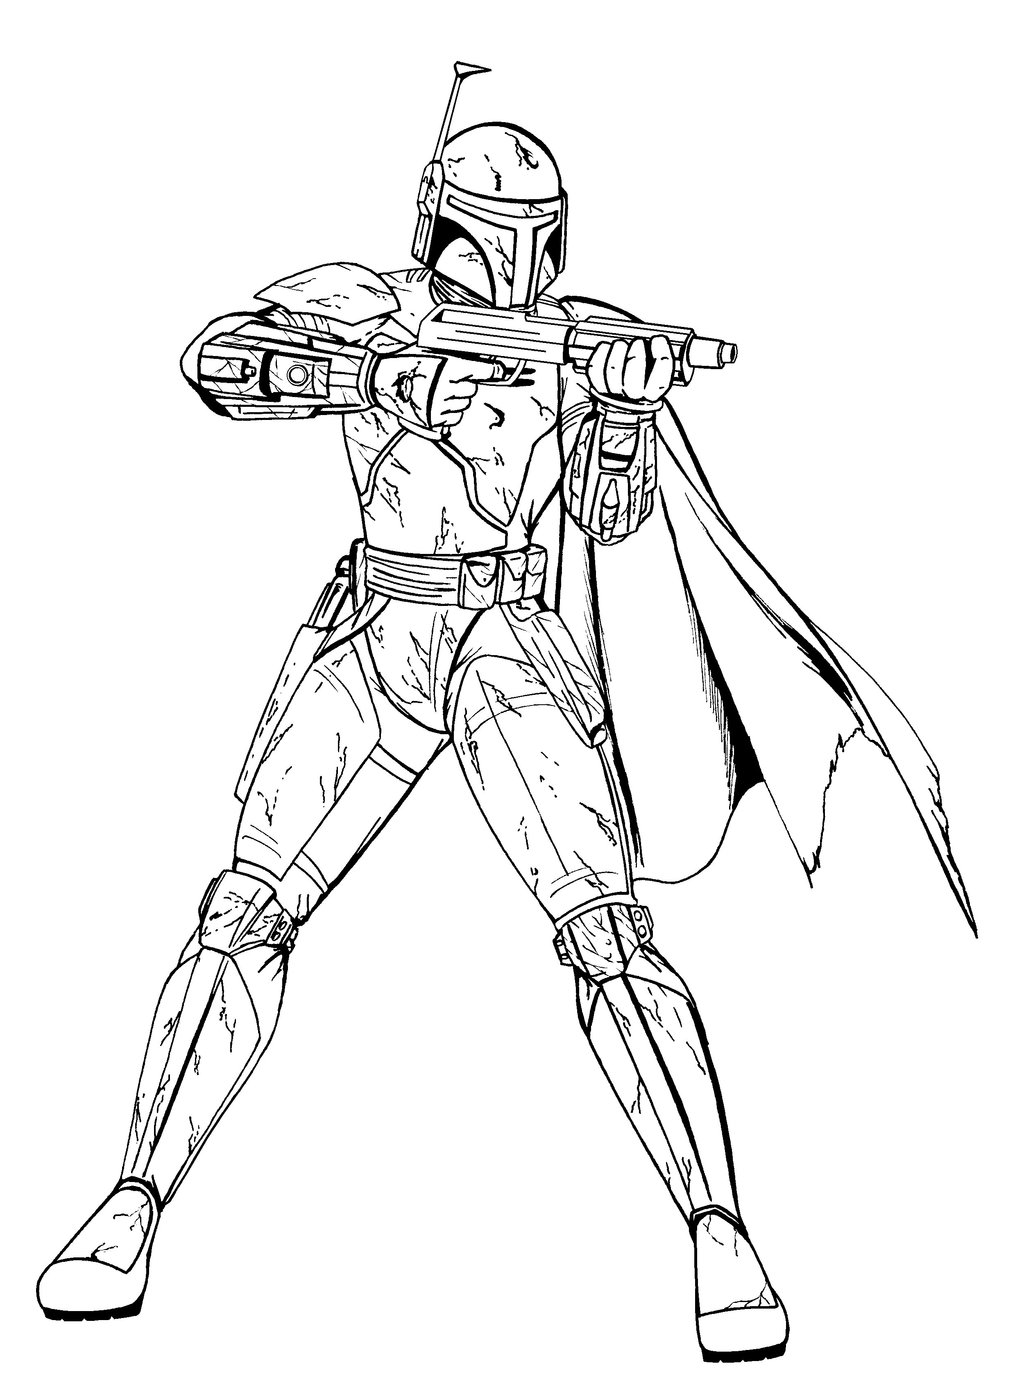 star wars coloring pictures star wars free to color for kids star wars kids coloring star pictures coloring wars